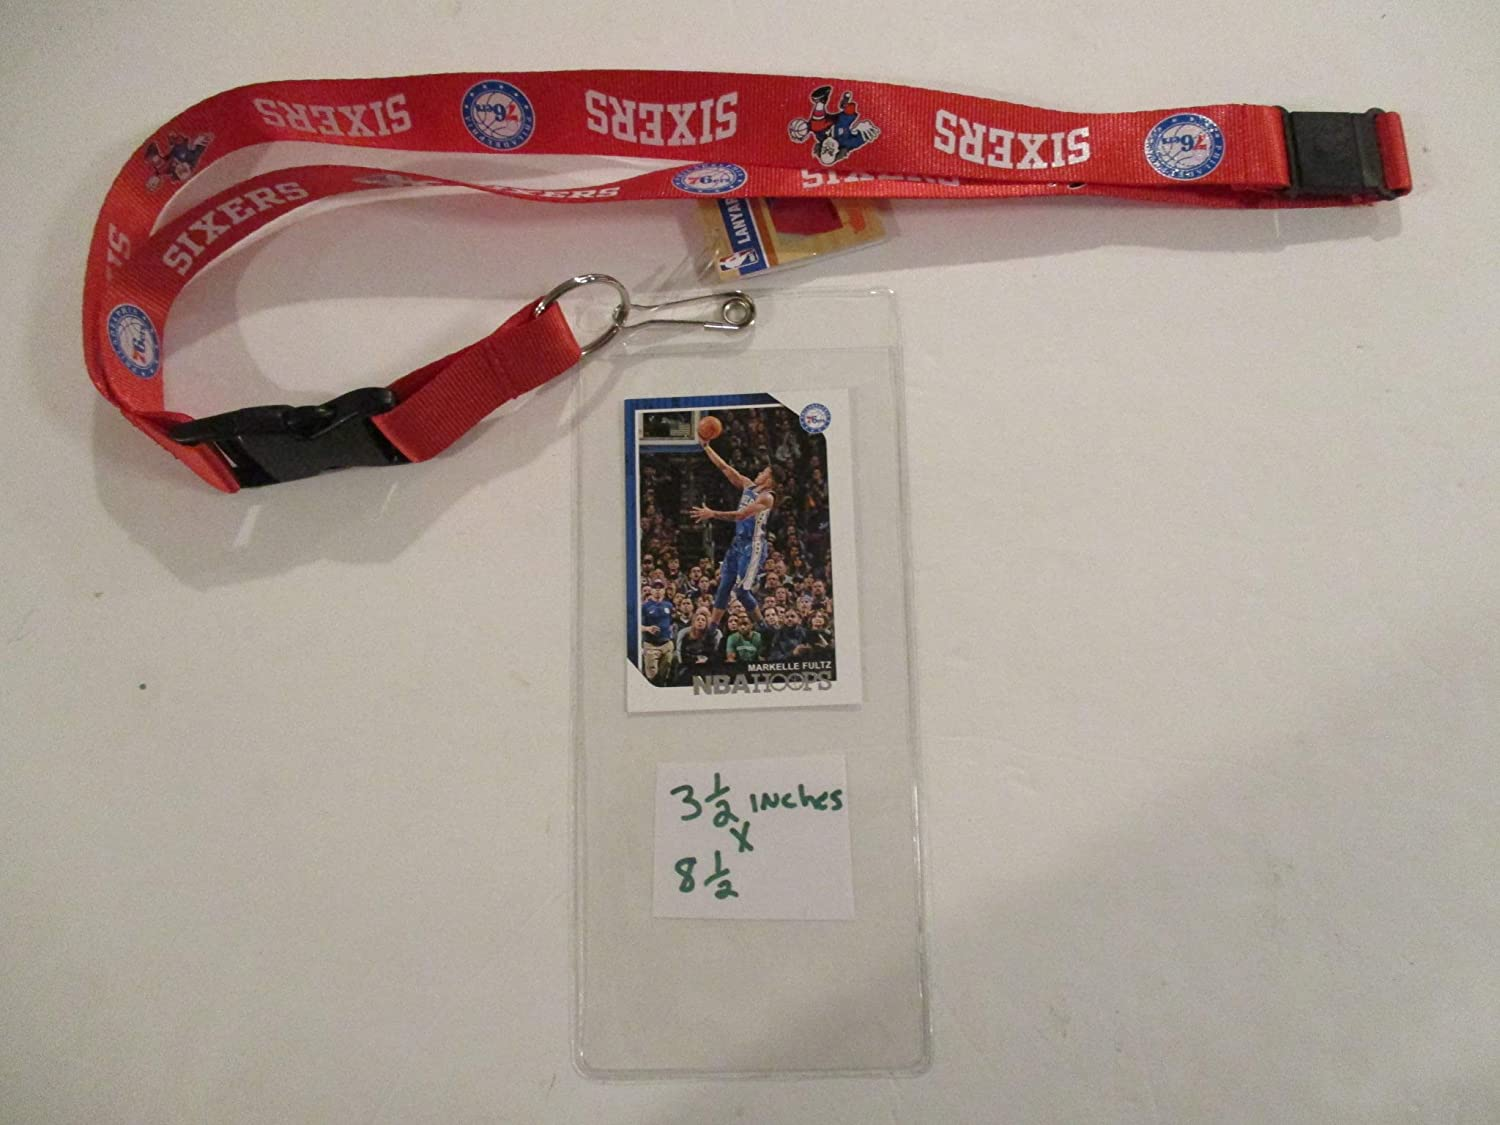 PHILADELPHIA 76ERS RED LANYARD WITH TICKET HOLDER PLUS COLLECTIBLE PLAYER CARD